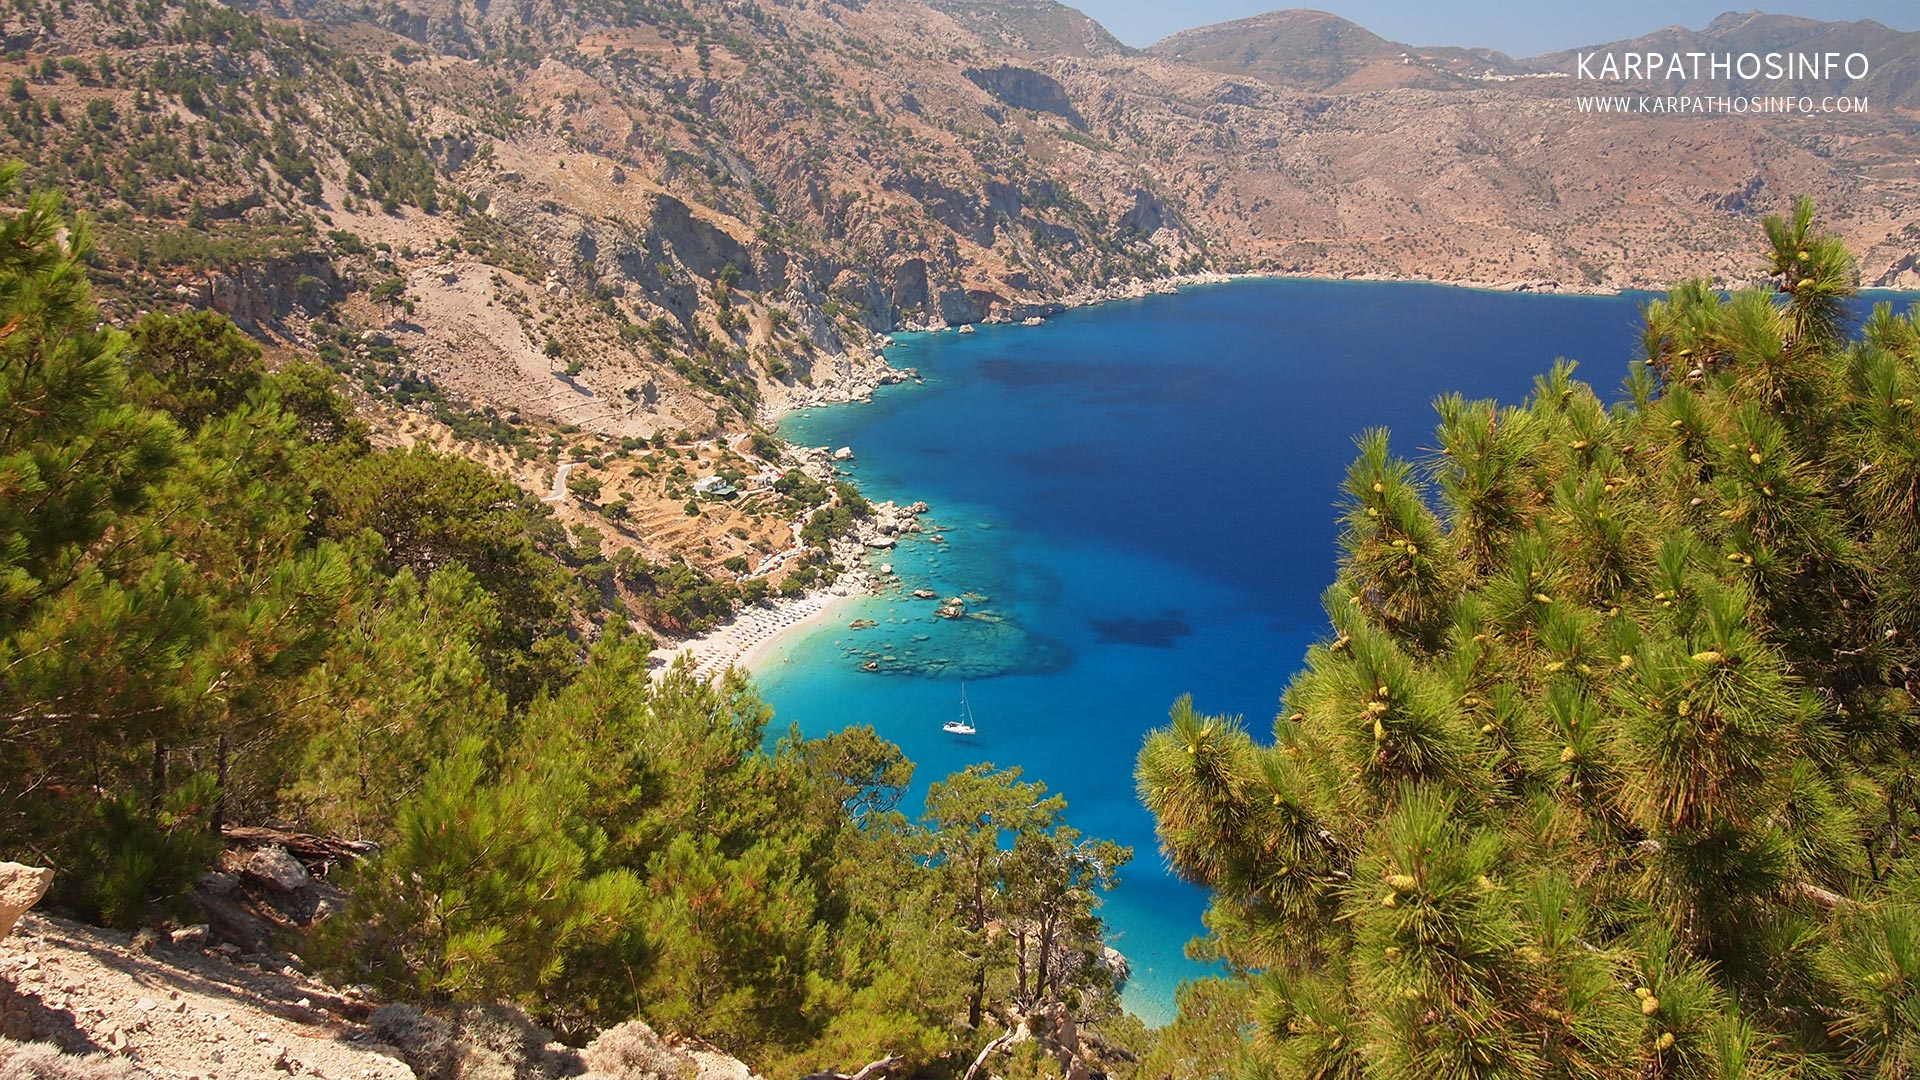 images/slider/about-karpathos.jpg